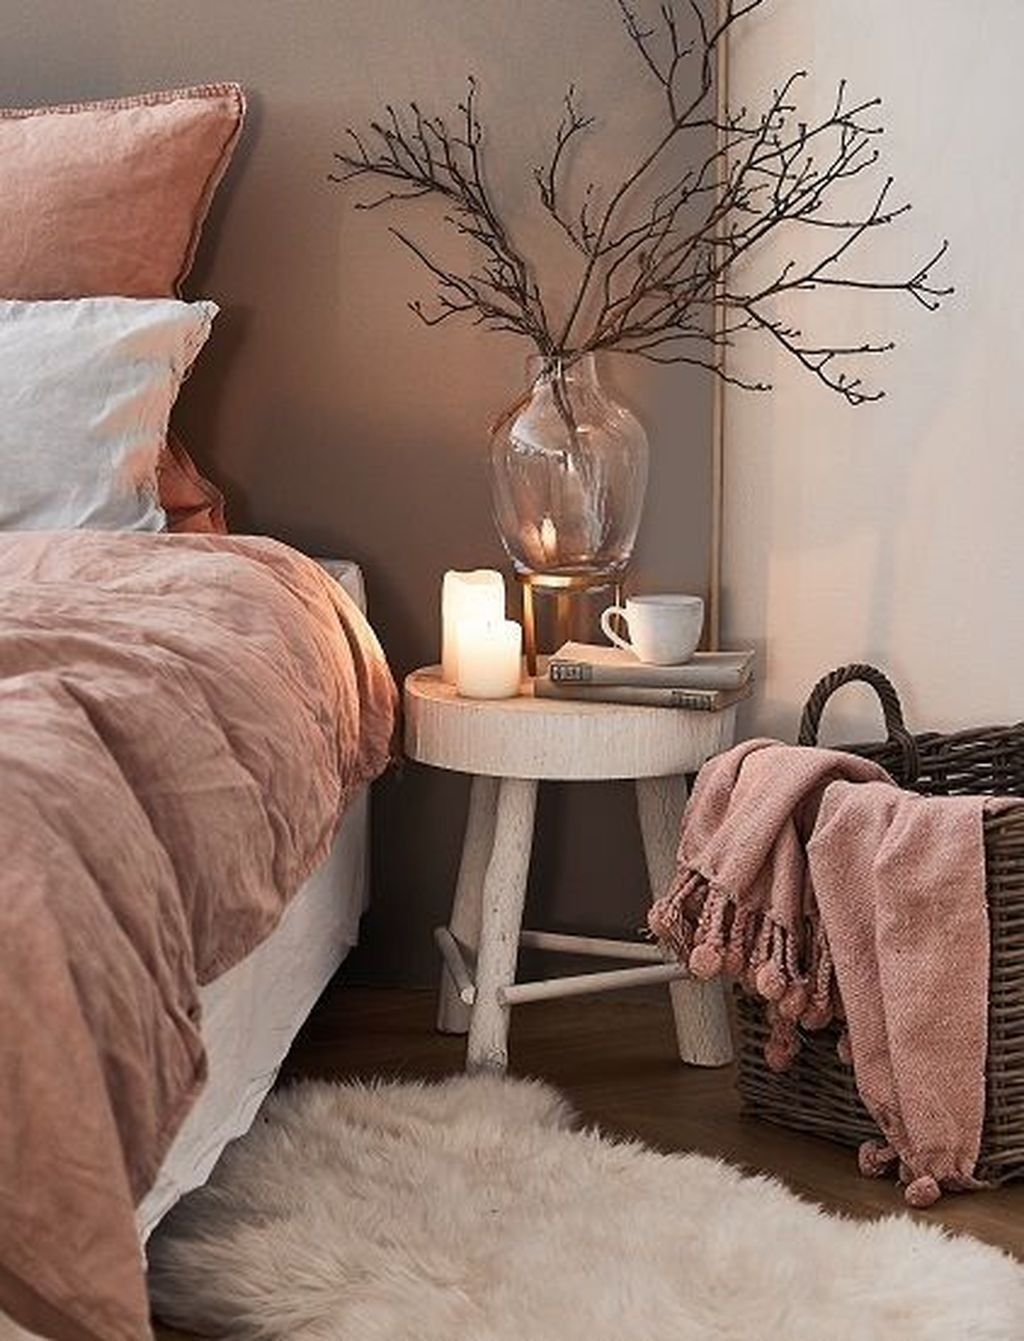 50 Pink Bedroom Decor You Can Try on Your Own - SWEETYHOMEE -  50 Pink Bedroom Decor You Can Try on Your Own  - #antiquedecor #apartmentdecor #bedroom #bedroomdecor #decor #homedecor #Pink #sweetyhomee